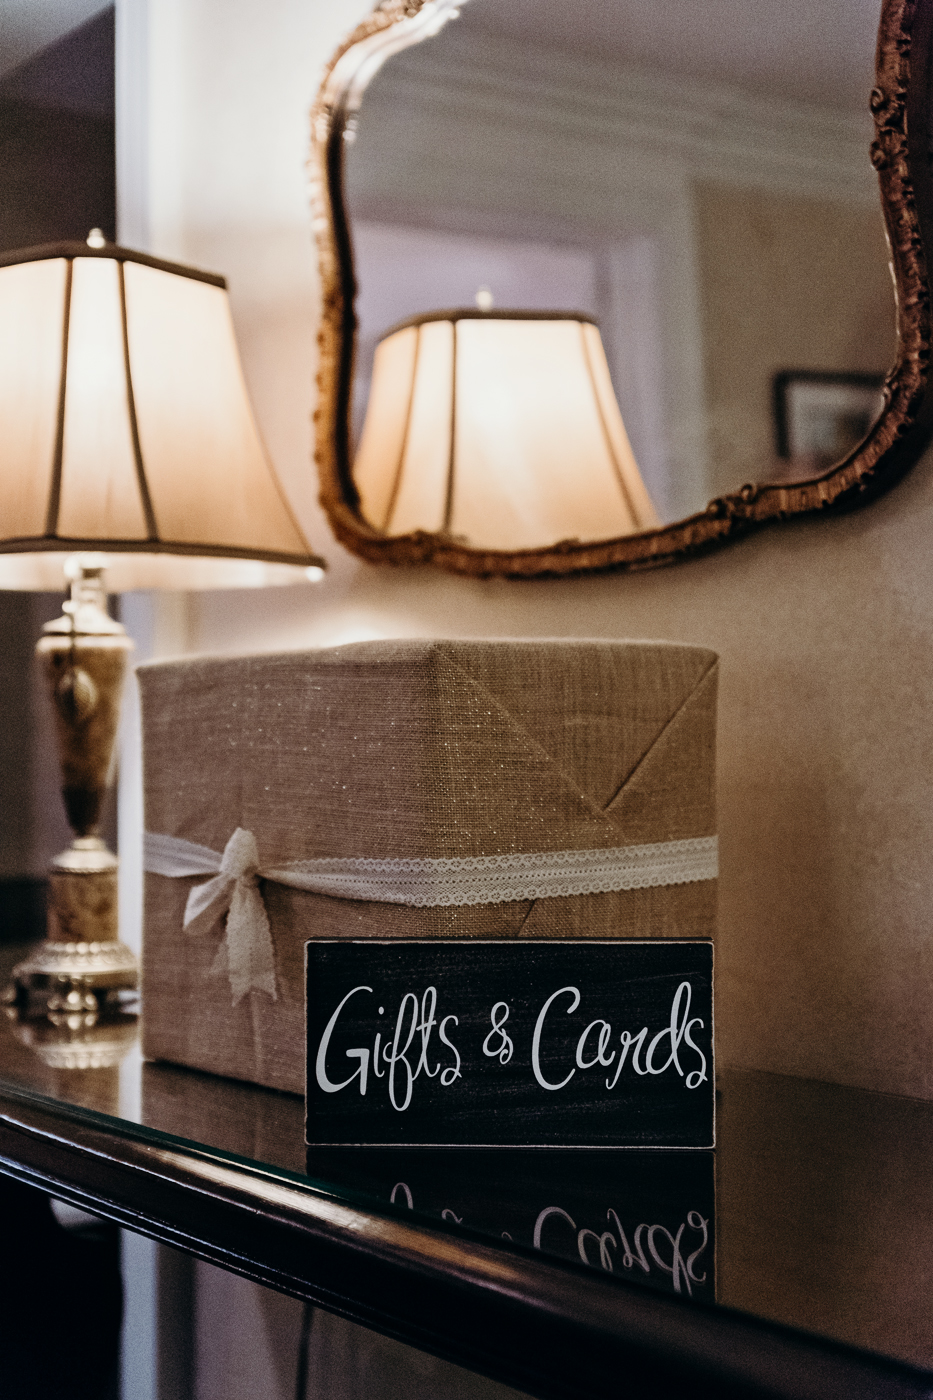 Gift card box and sign